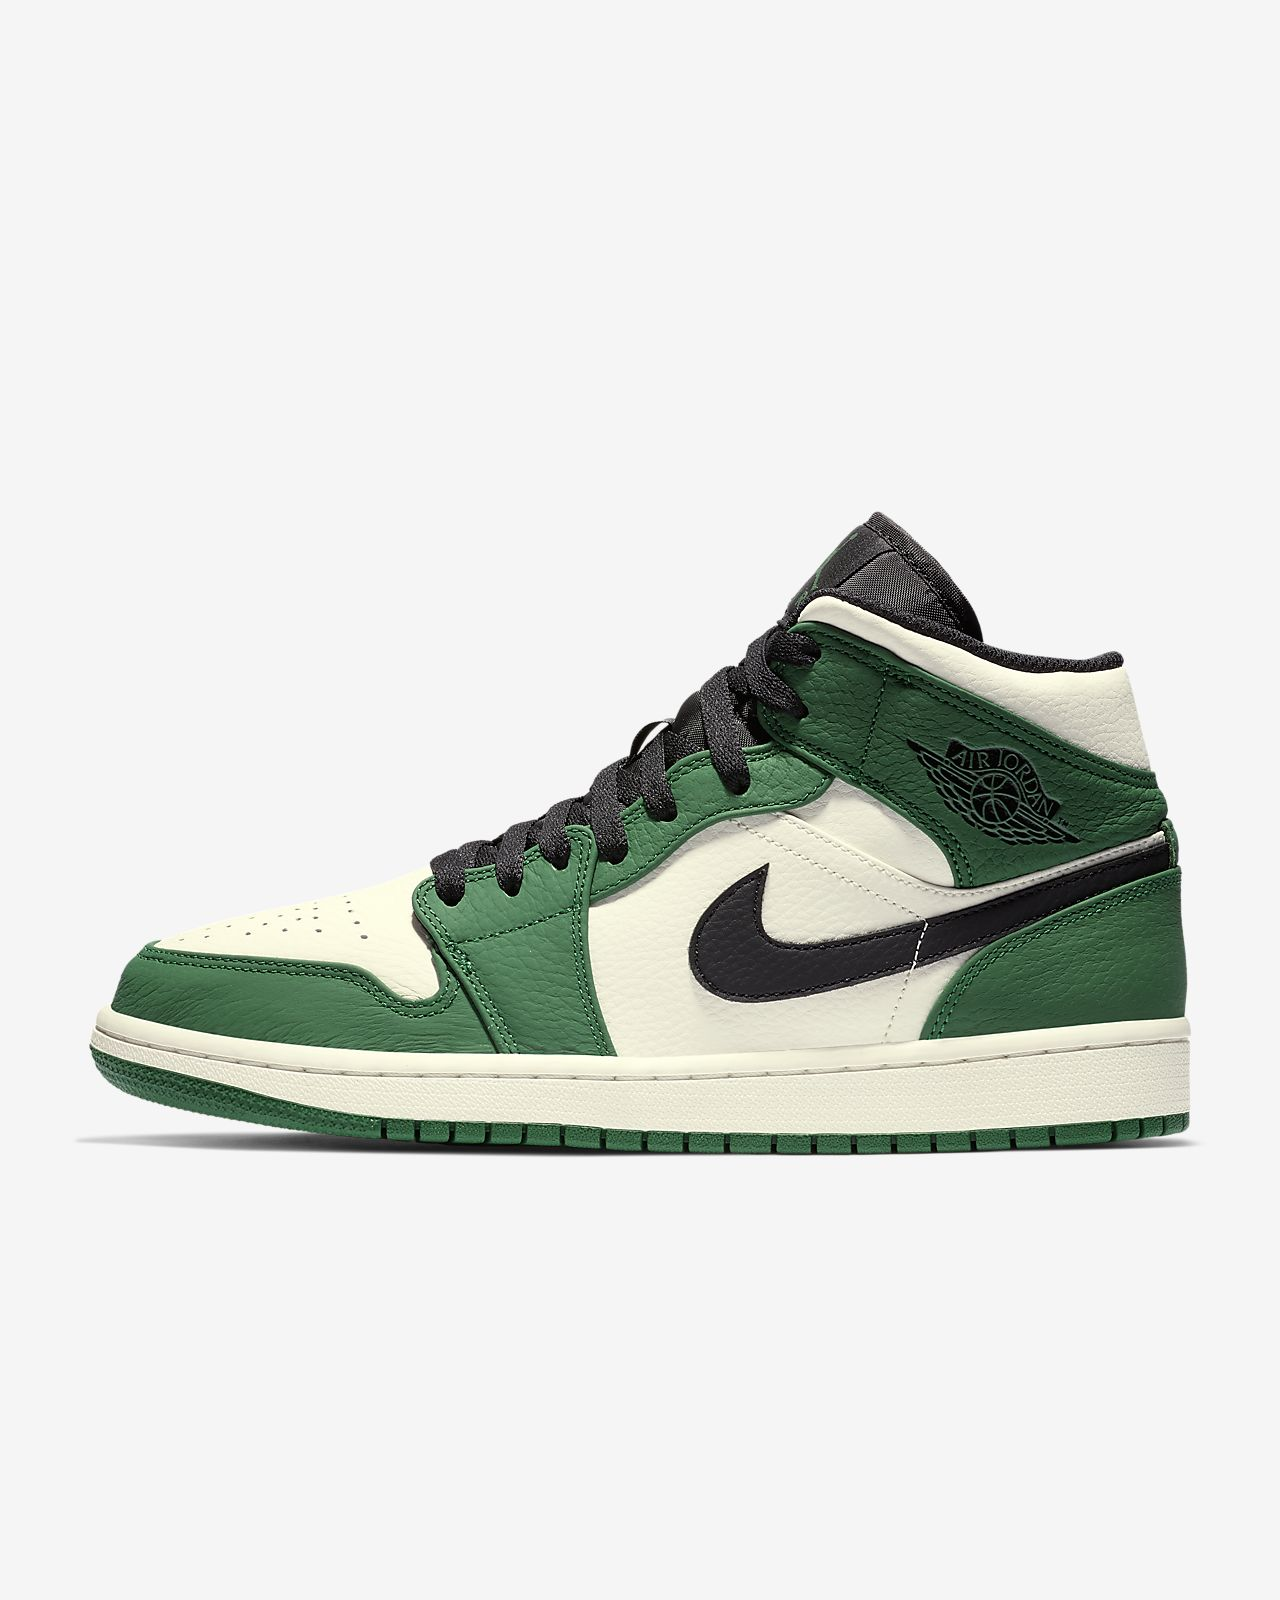 wholesale dealer 9e16e 8c4b3 Men s Shoe. Air Jordan 1 Mid SE